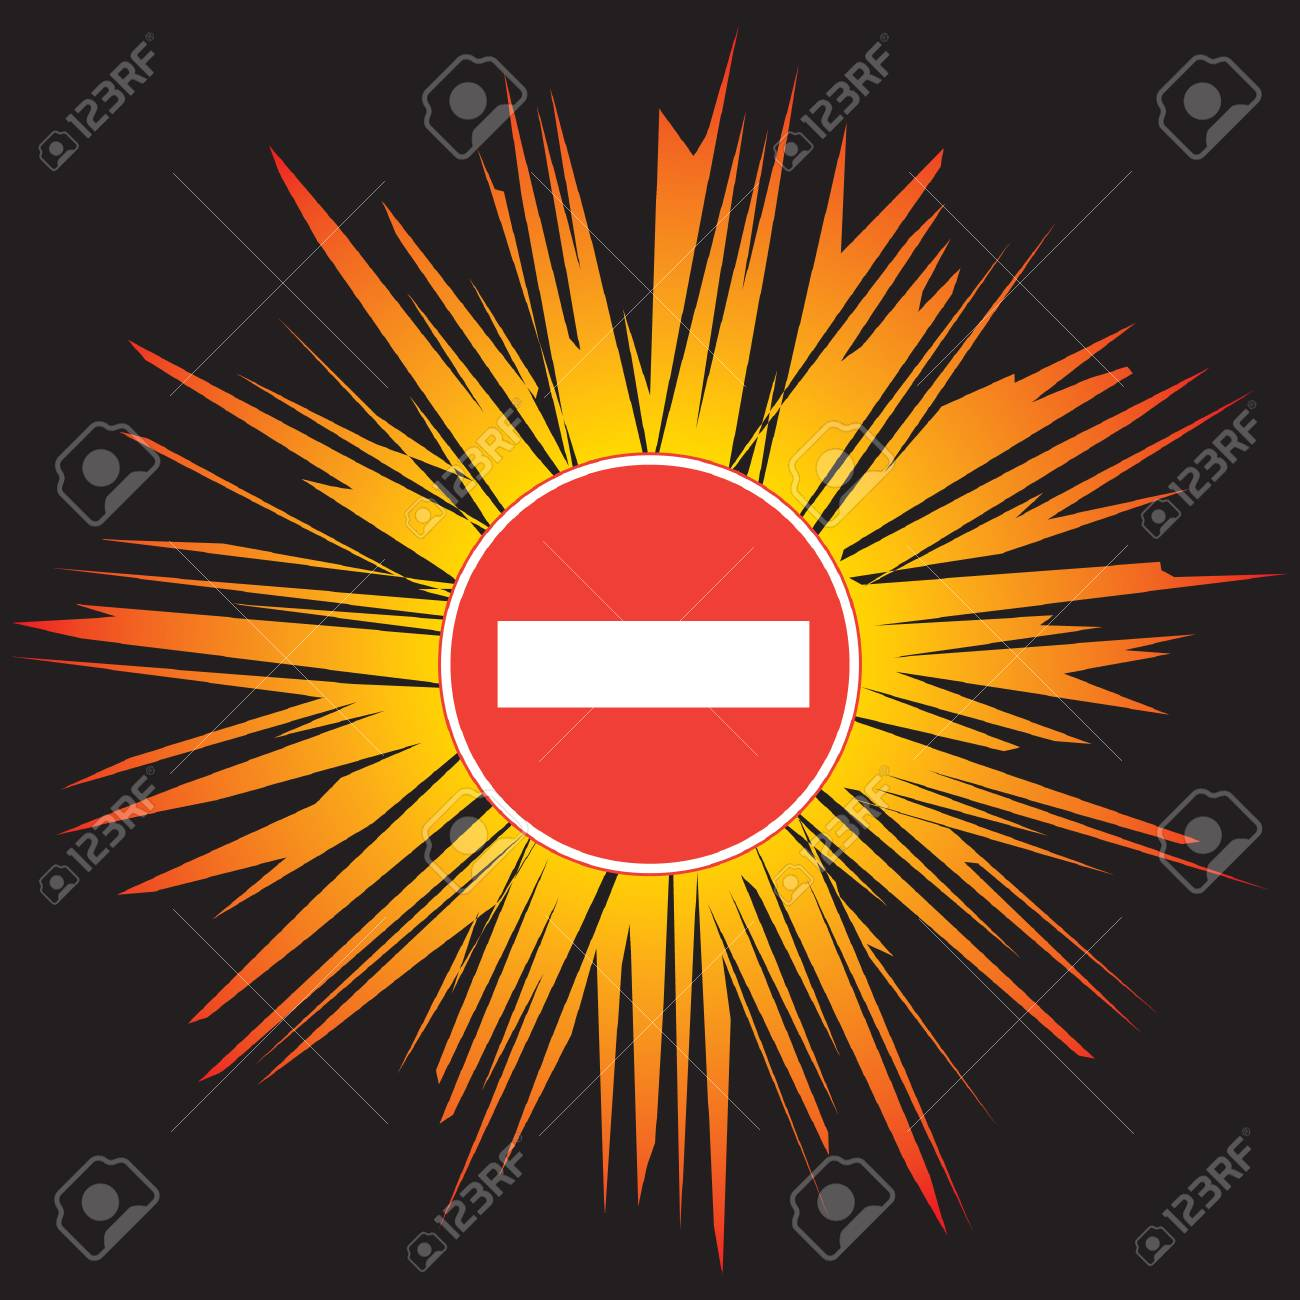 Attention - No Entry Stock Vector - 5432653